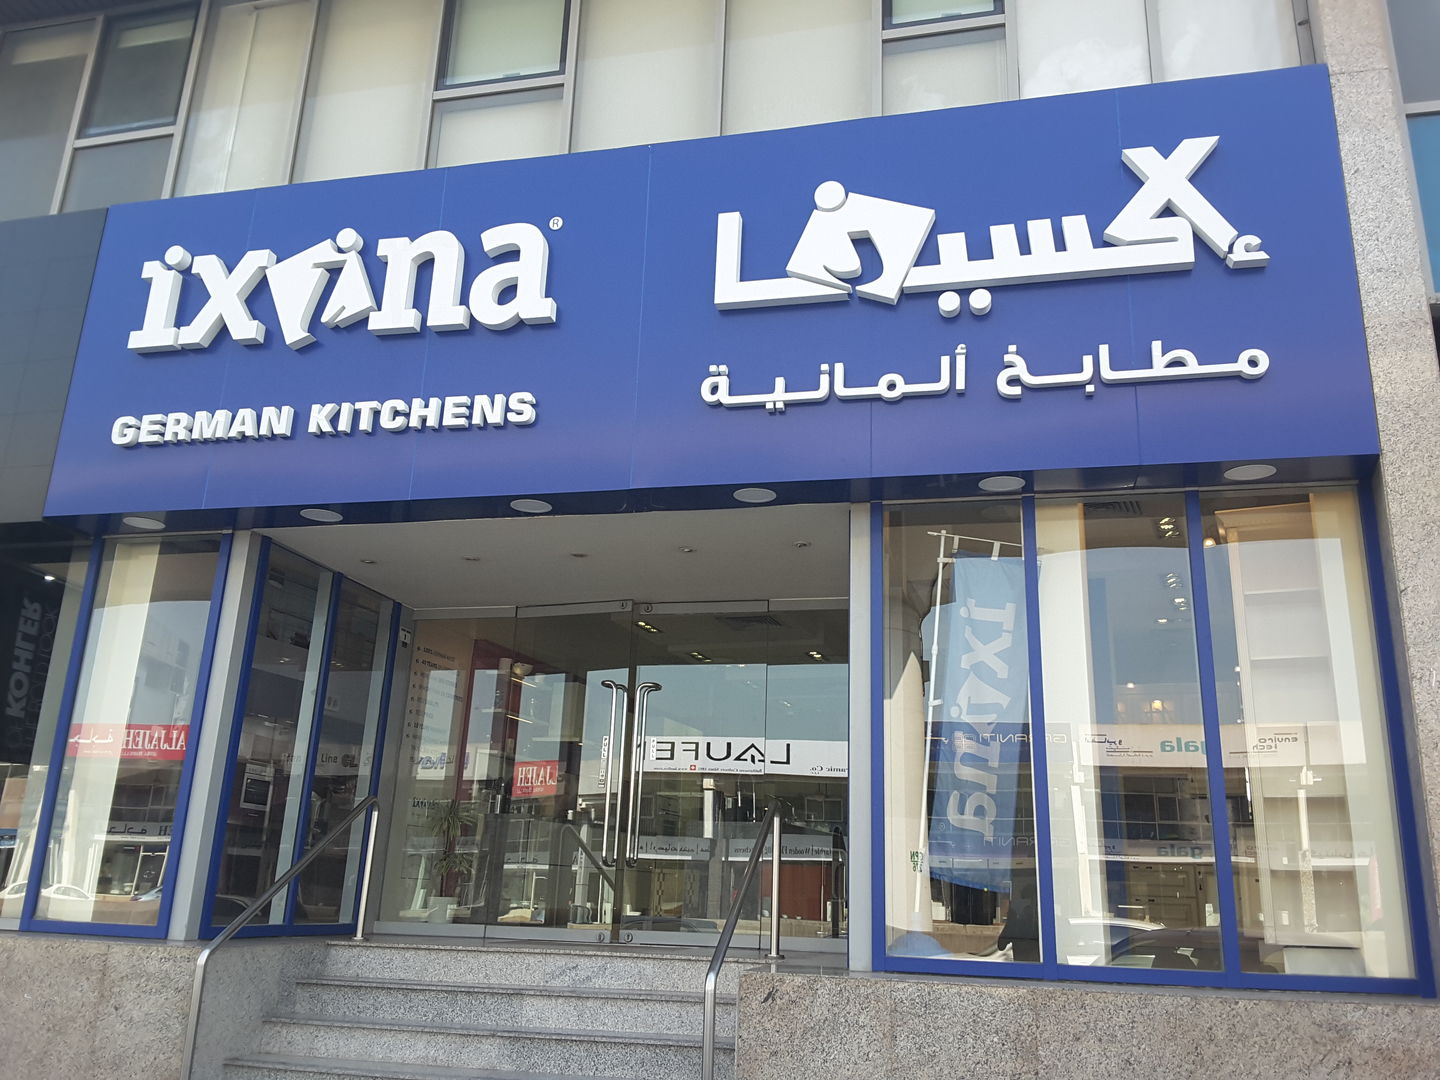 Ixina German Kitchens, (Kitchen & Dining) in Al Khabaisi, Dubai